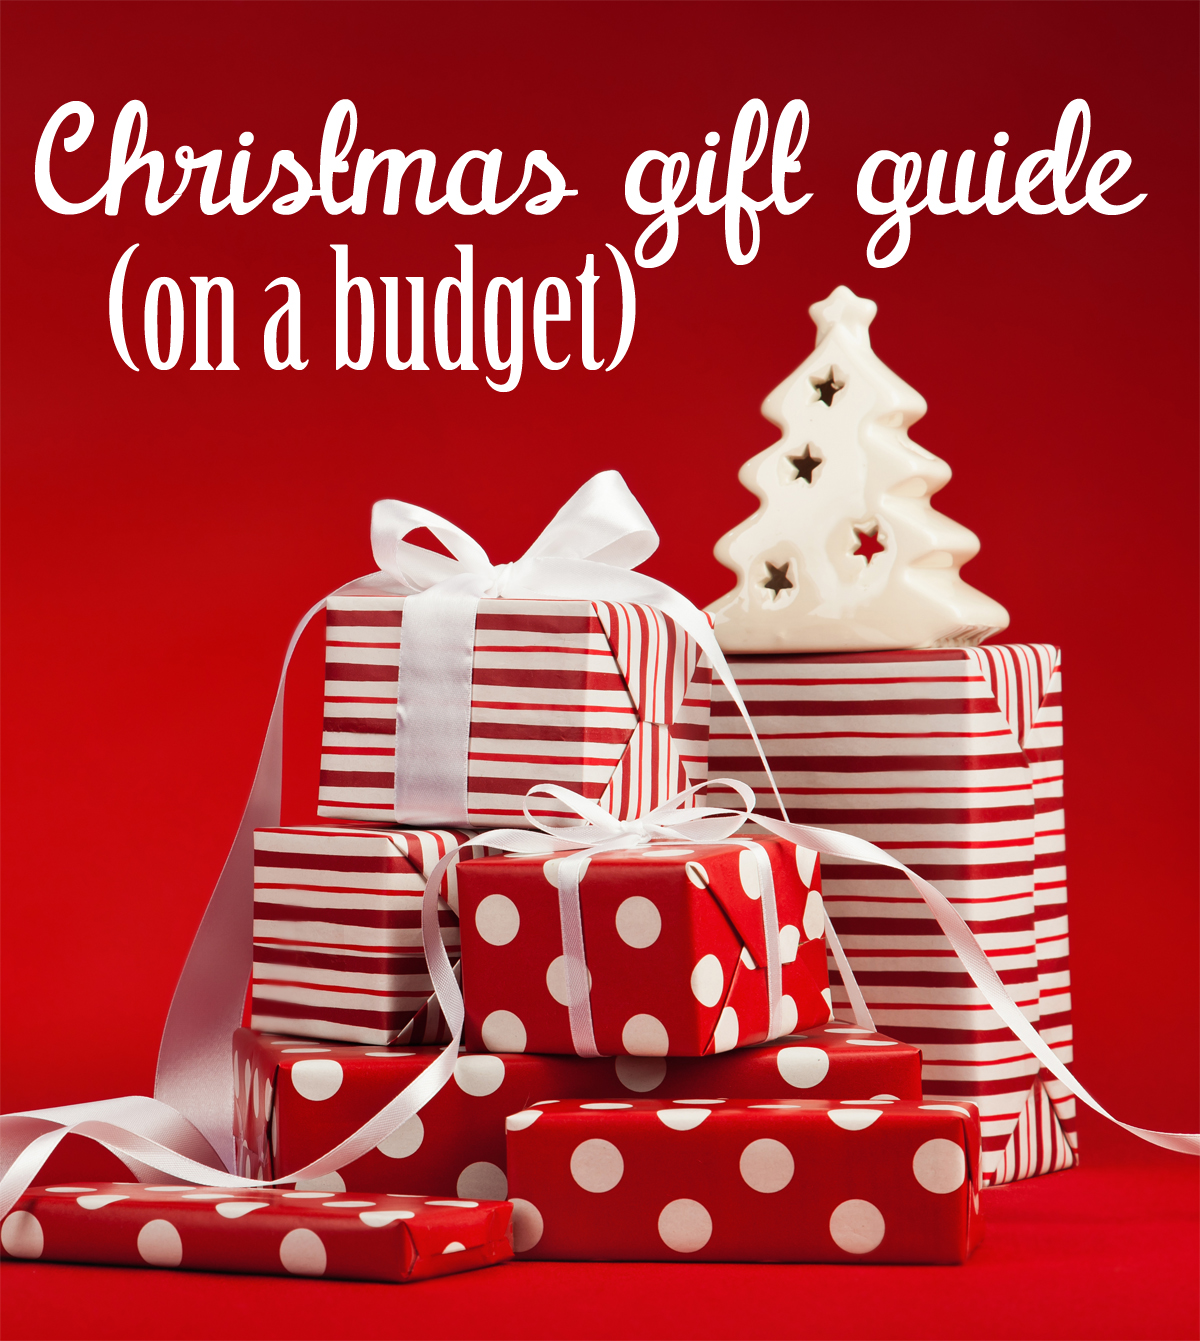 chirstmas gift guide on a budget